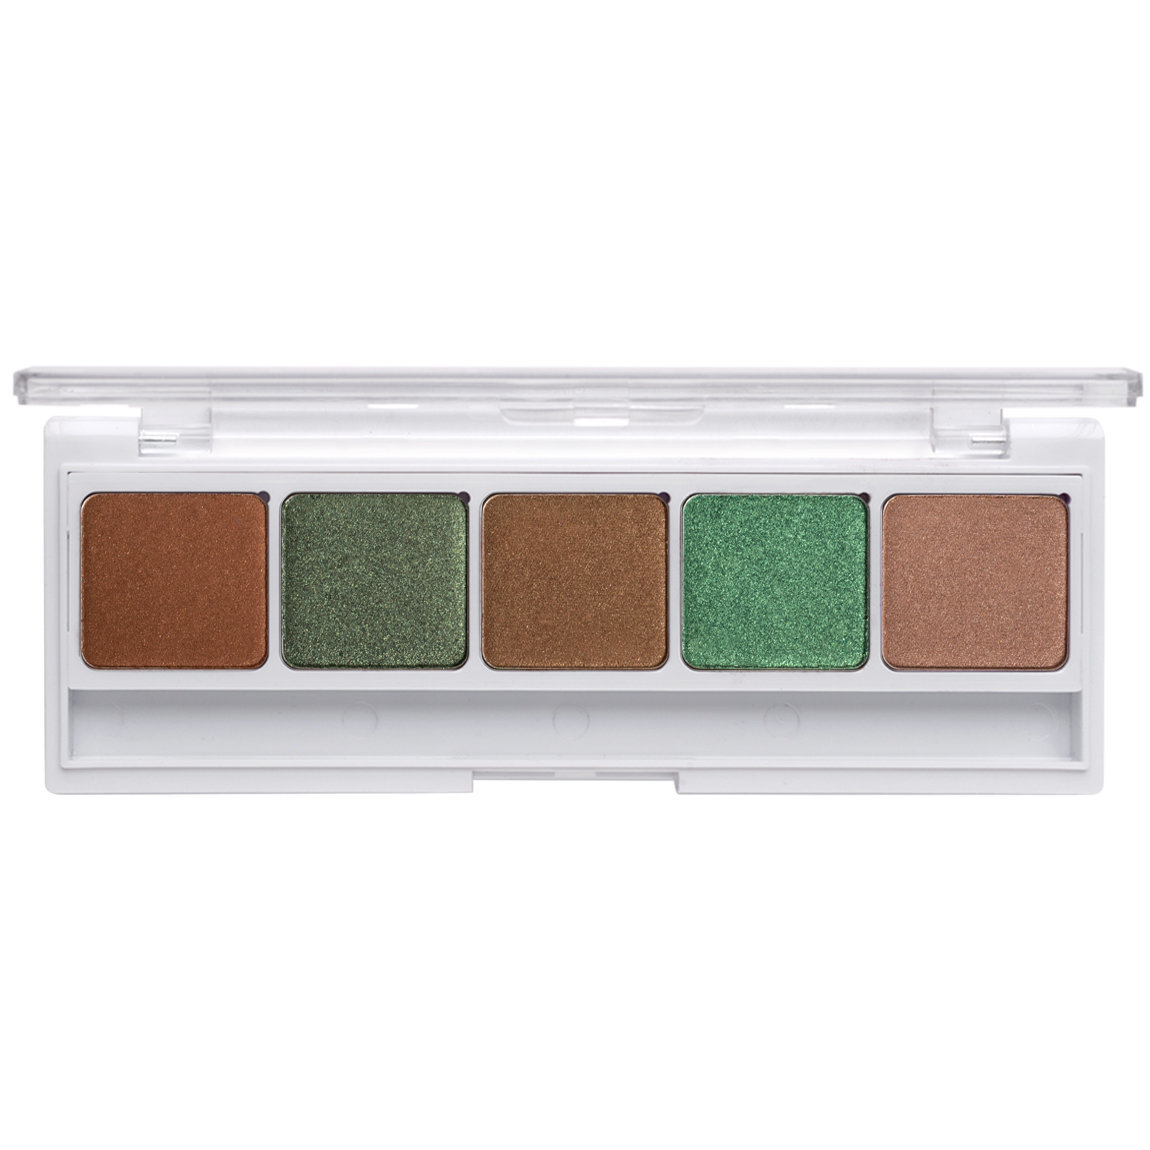 Natasha Denona Eyeshadow Palette 5 Palette 11 alternative view 1 - product swatch.